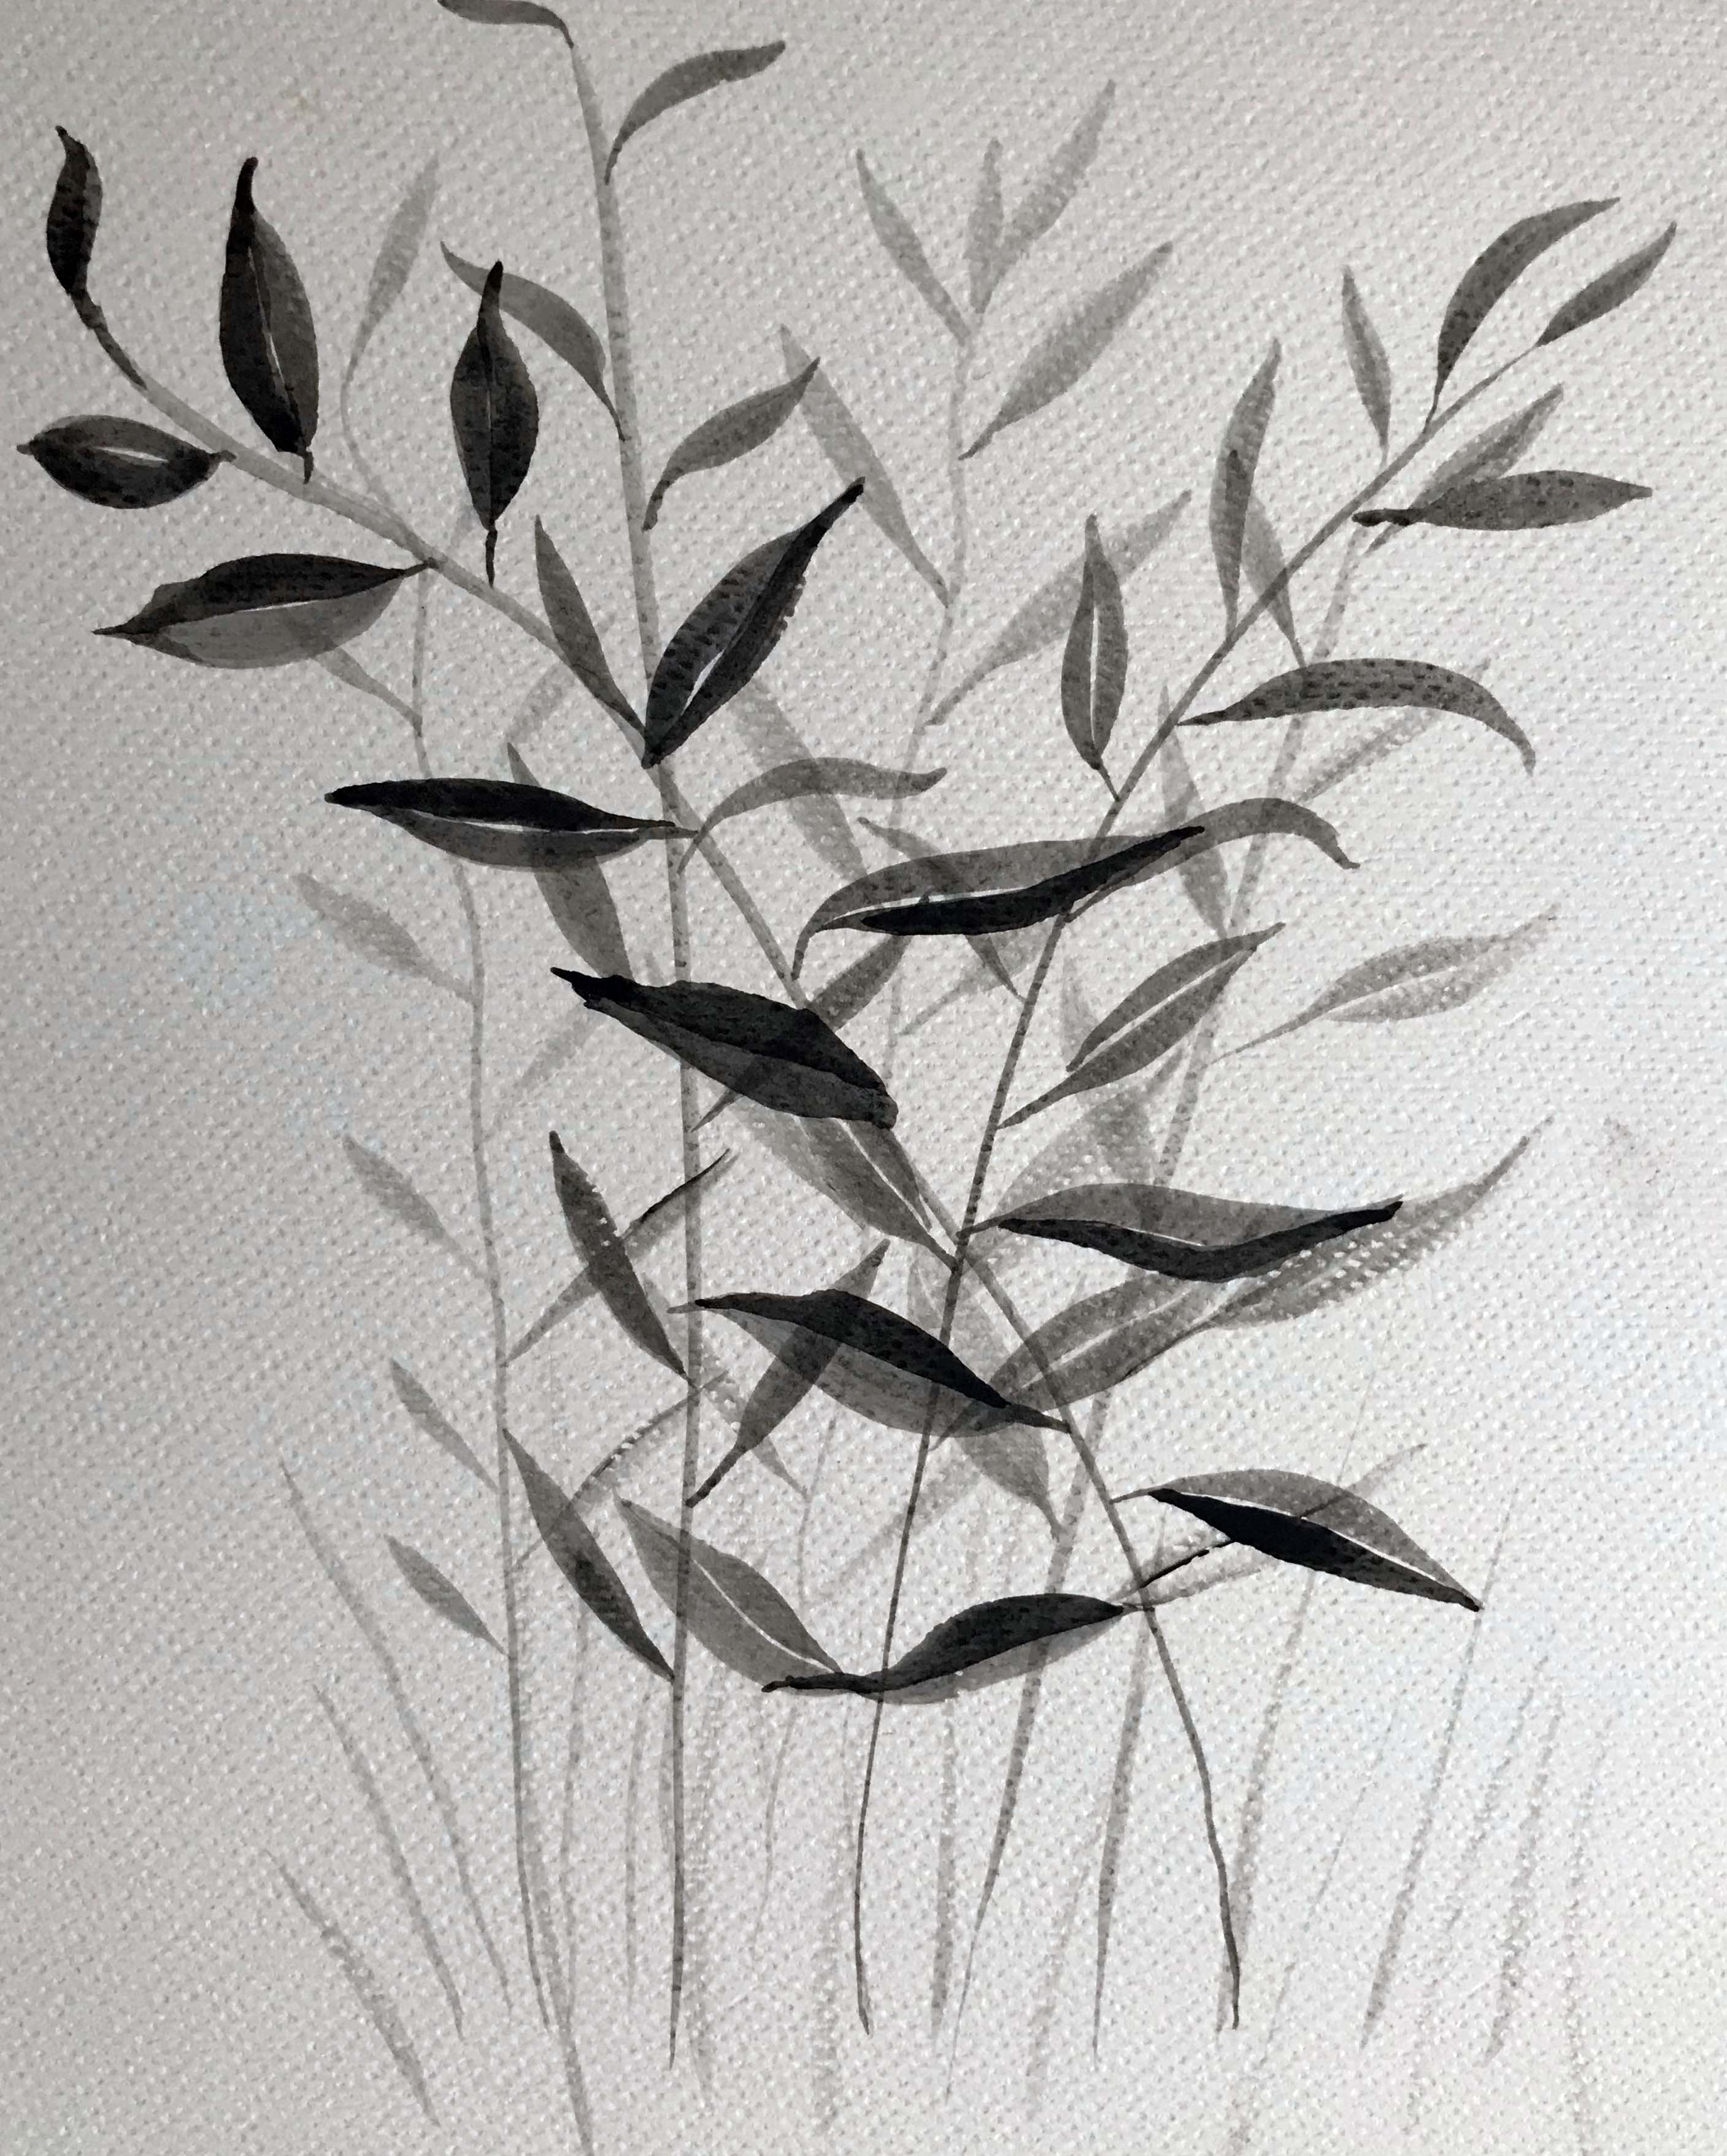 watercolour leaves shades of grey